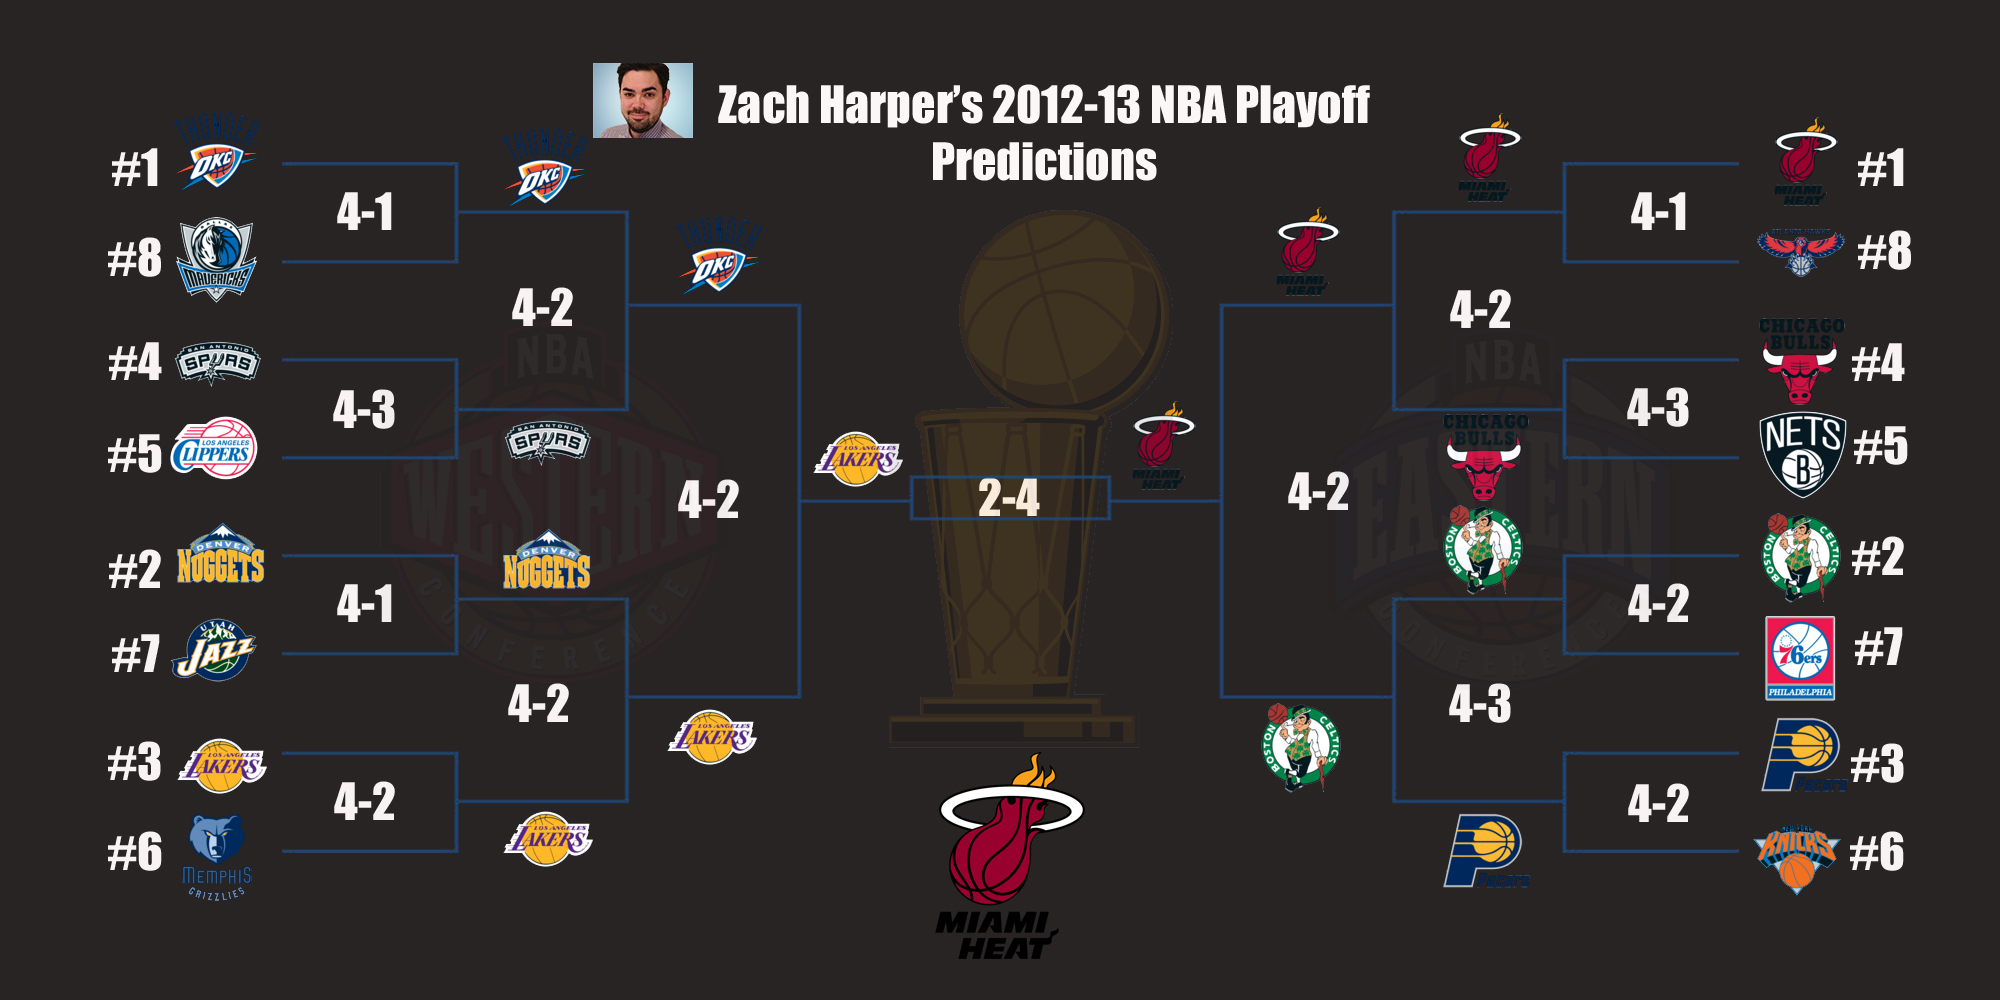 Cbssportscom 2012 13 Nba Playoff Predictions Cbssportscom